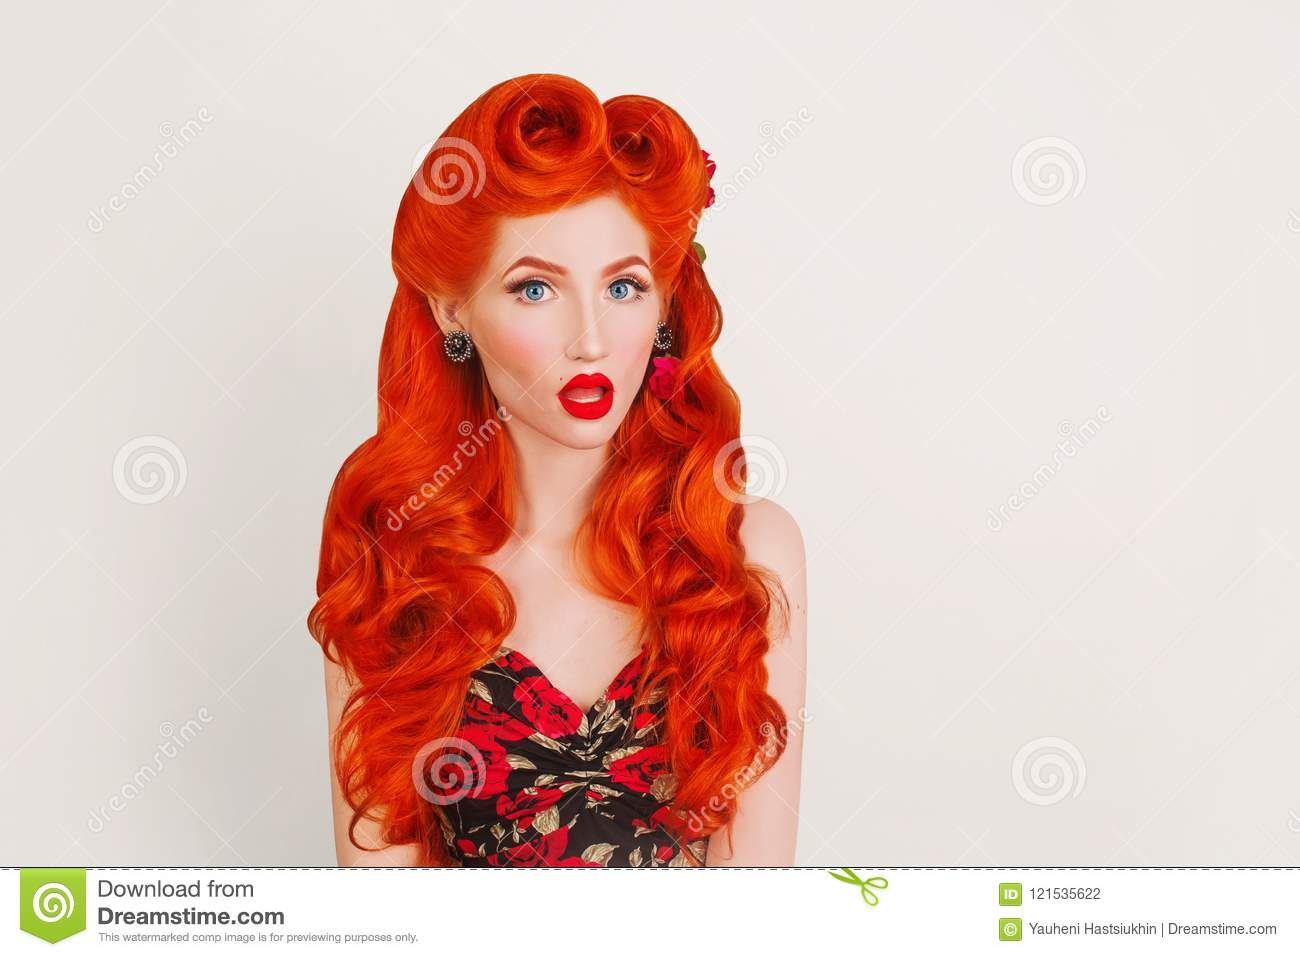 Express Emotions Retro Girl With Red Lips In Stylish Dress With